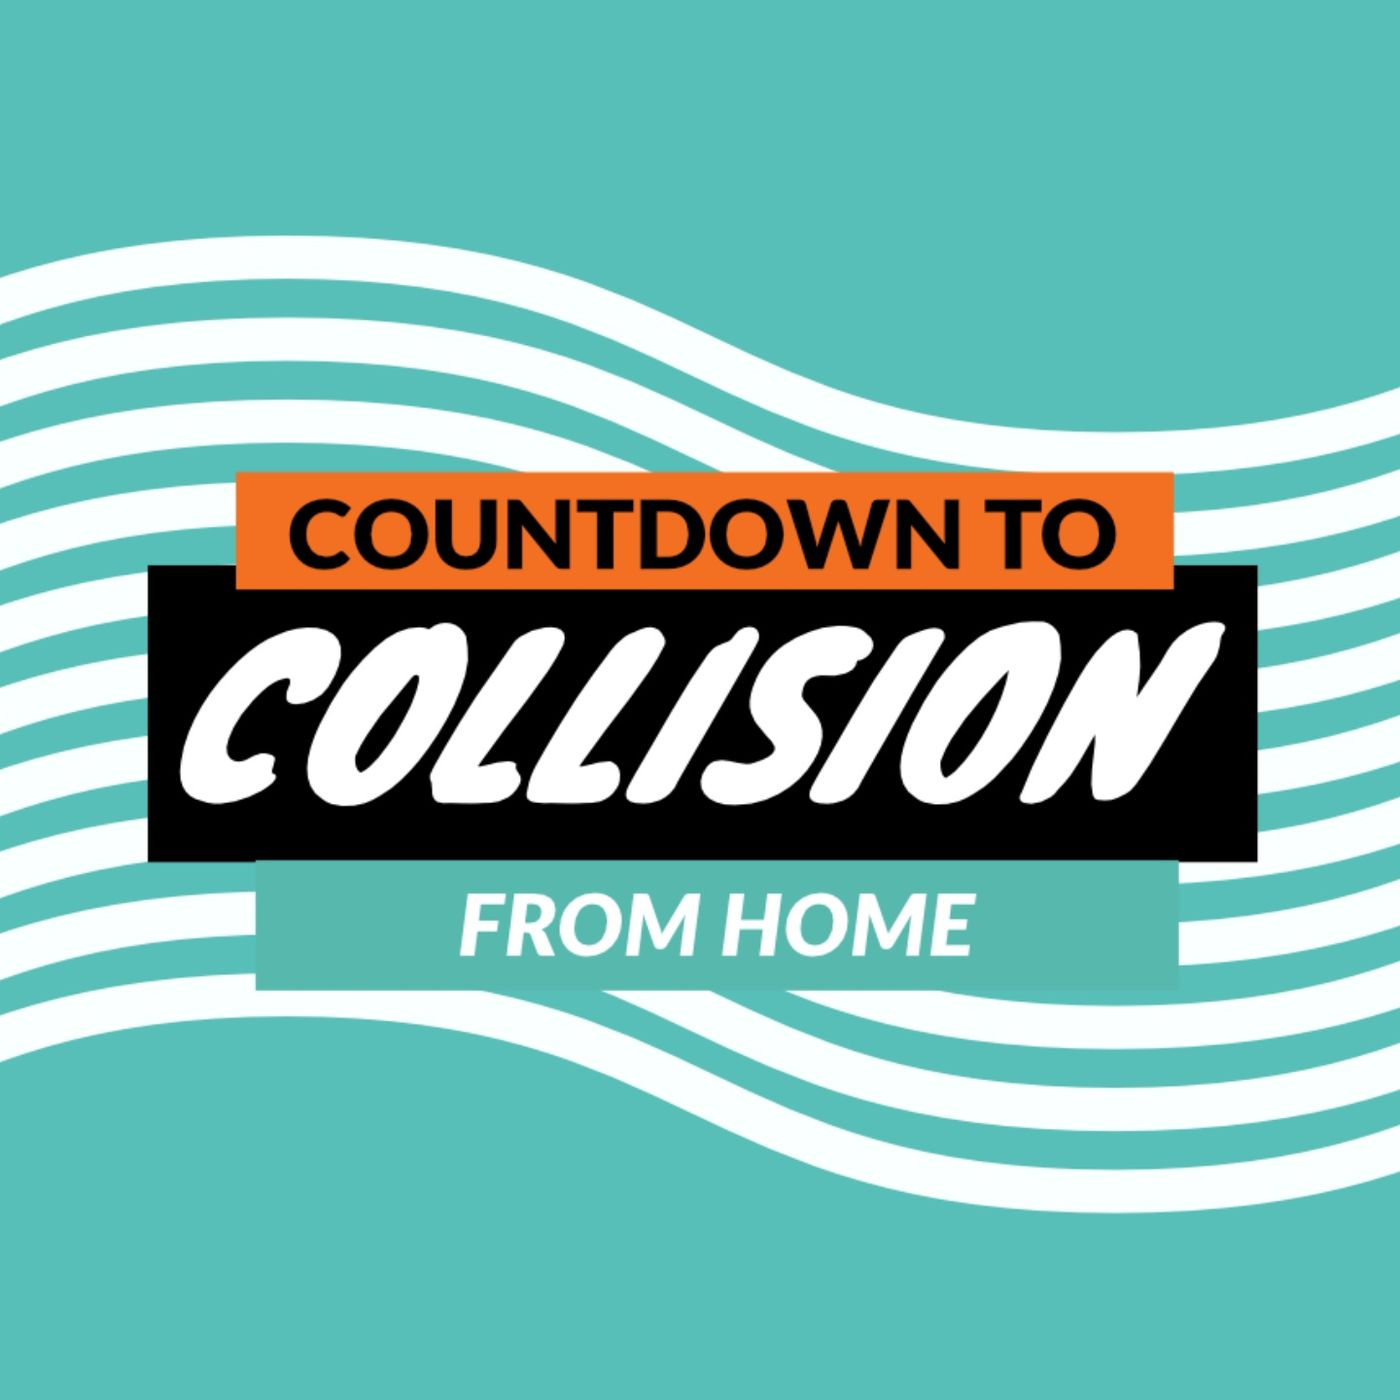 BCG Digital Ventures, Dentons, pitching the Media and a look at the Collision from Home app